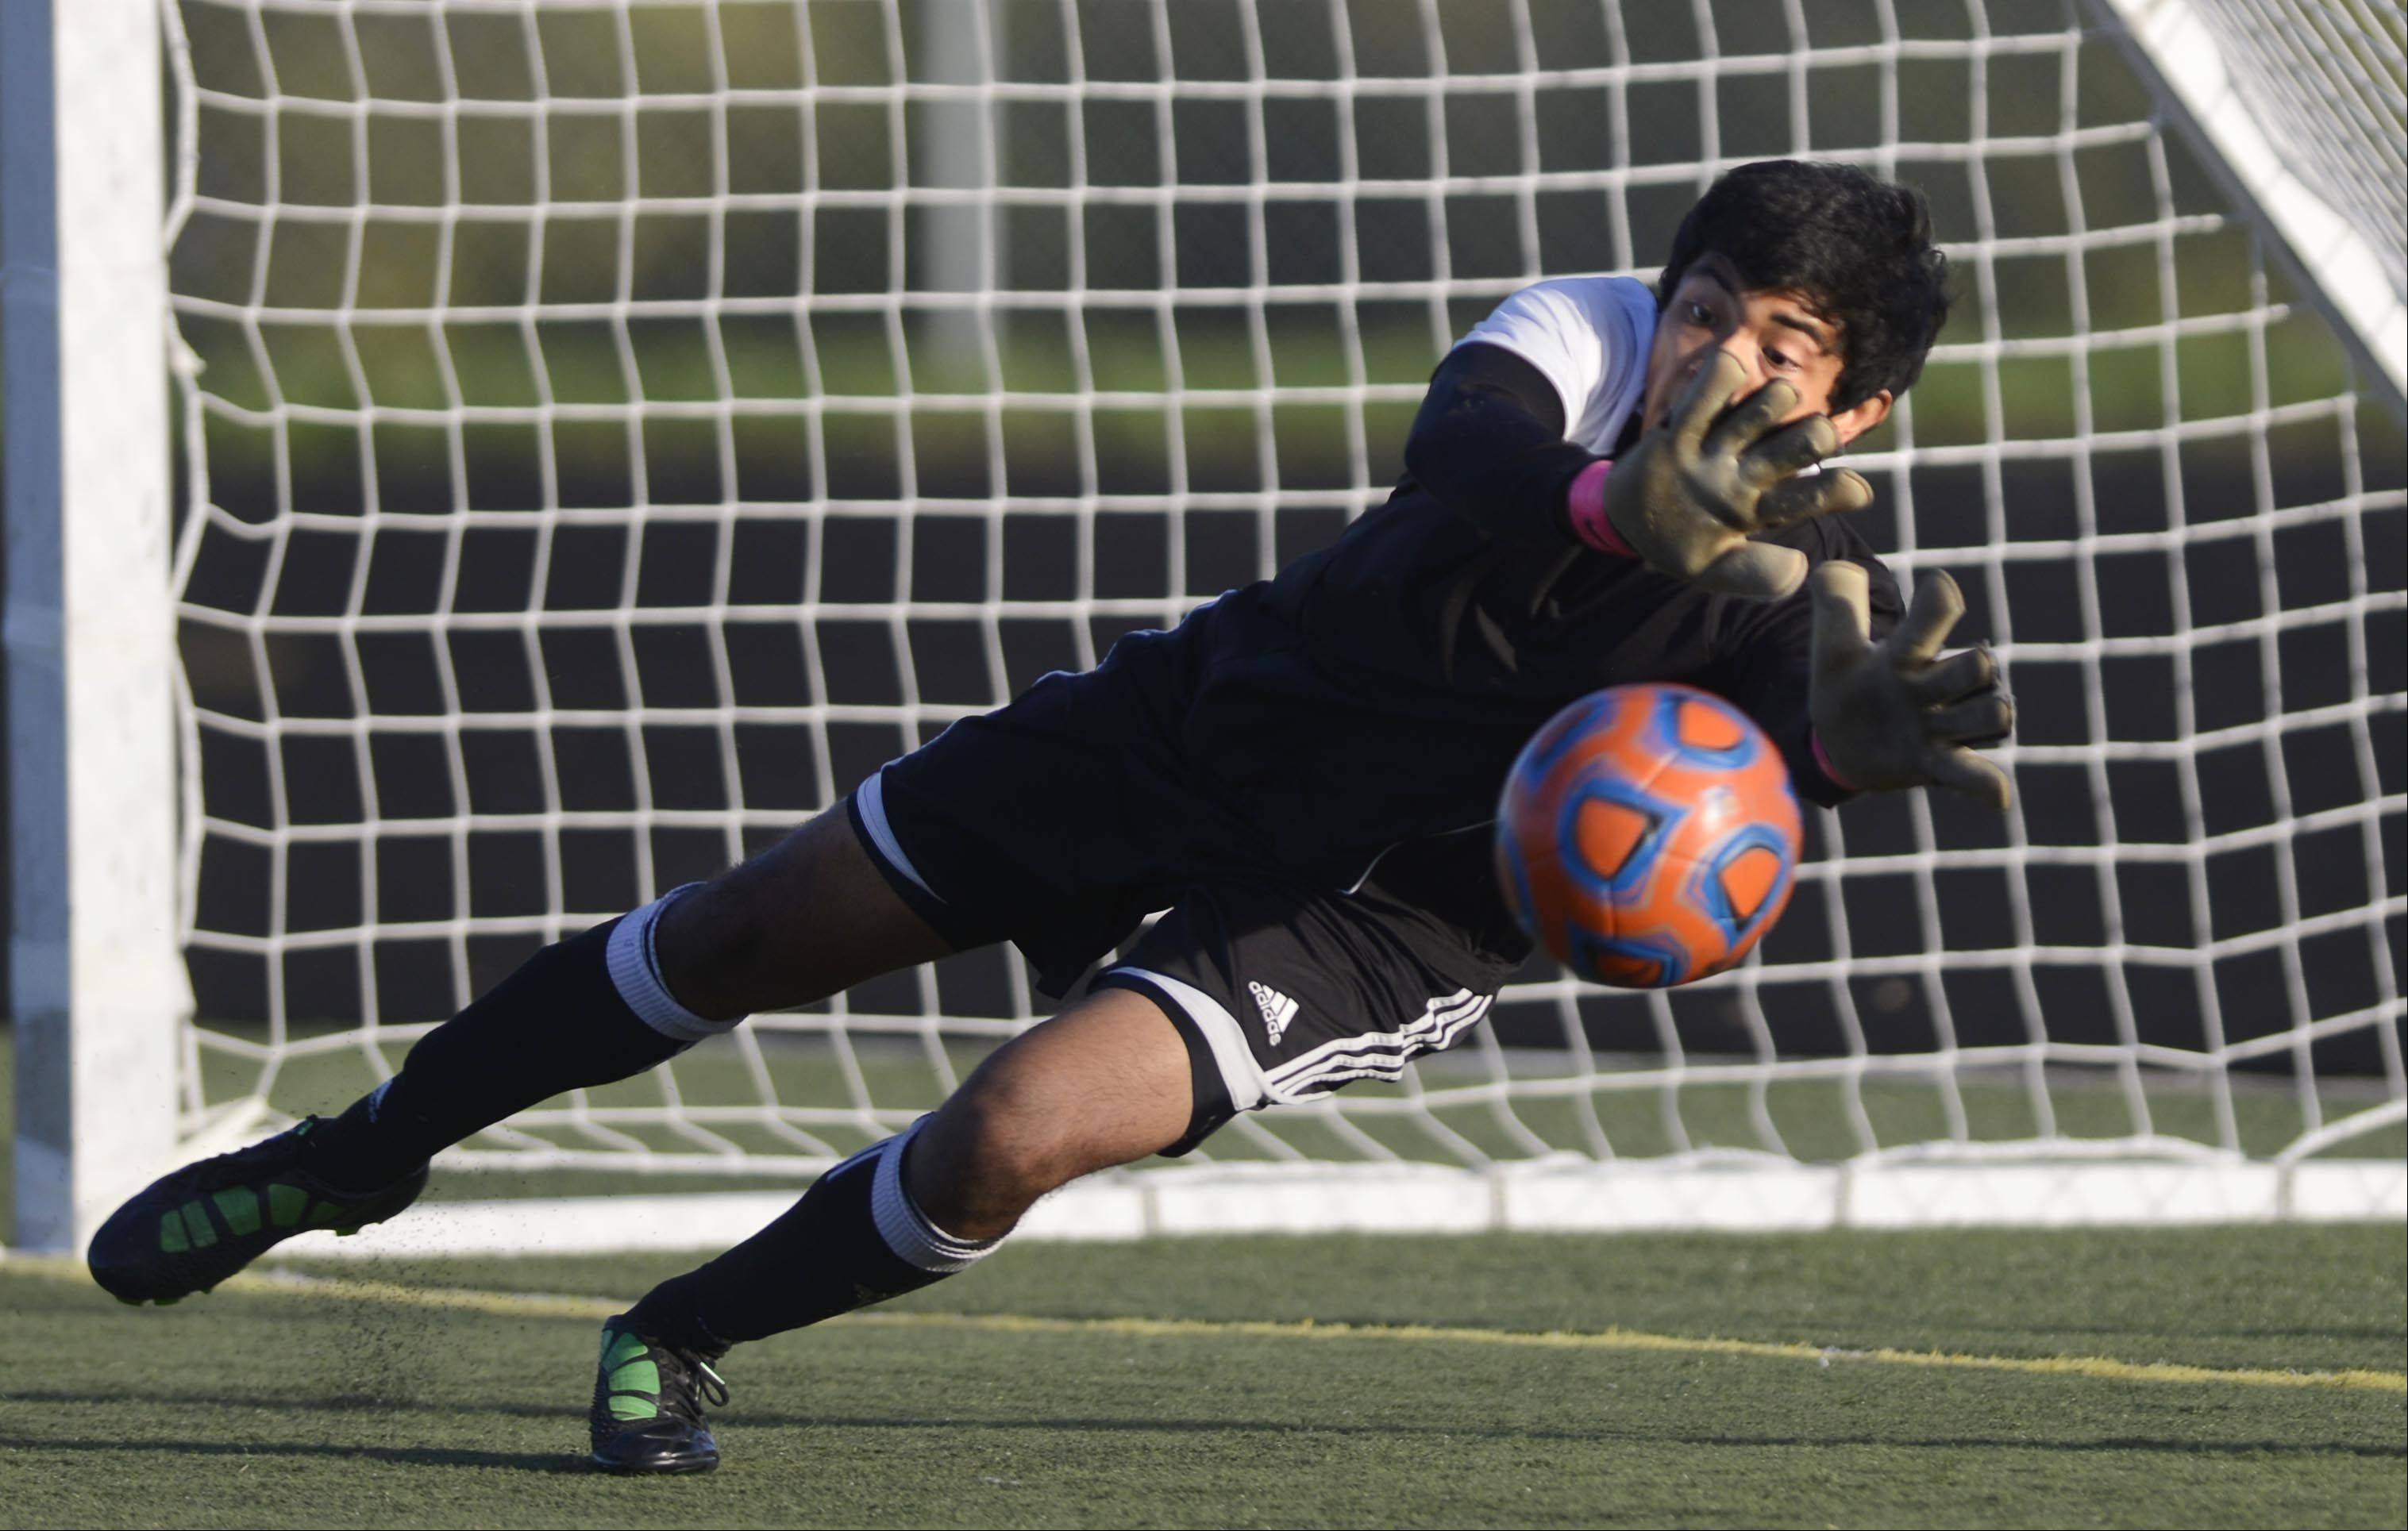 Streamwood's Larkin goalkeeper Javy Delgado can't reach a goal kick by Streamwood's Christian Vences Monday in Streamwood.